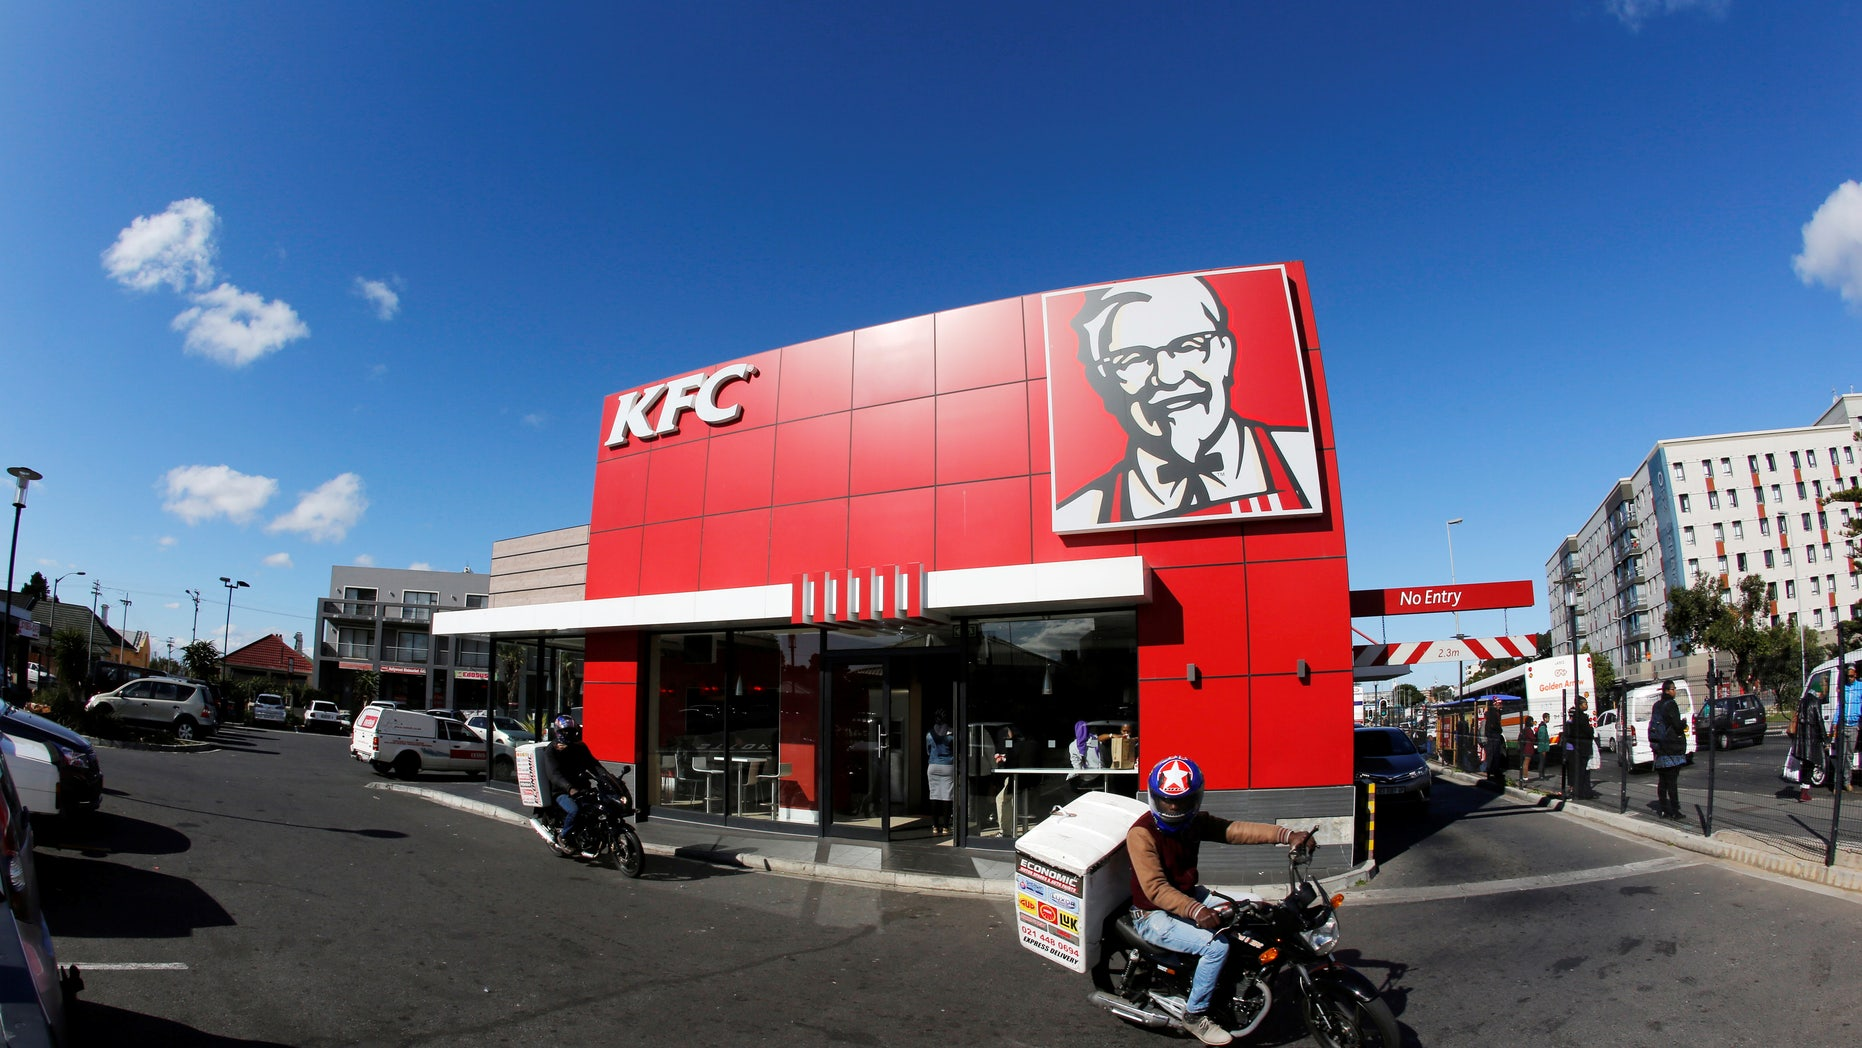 A branch of fast food outlet Kentucky Fried Chicken (KFC) is seen in Cape Town, South Africa, June 3, 2016. REUTERS/Mike Hutchings - RTX2FIMY